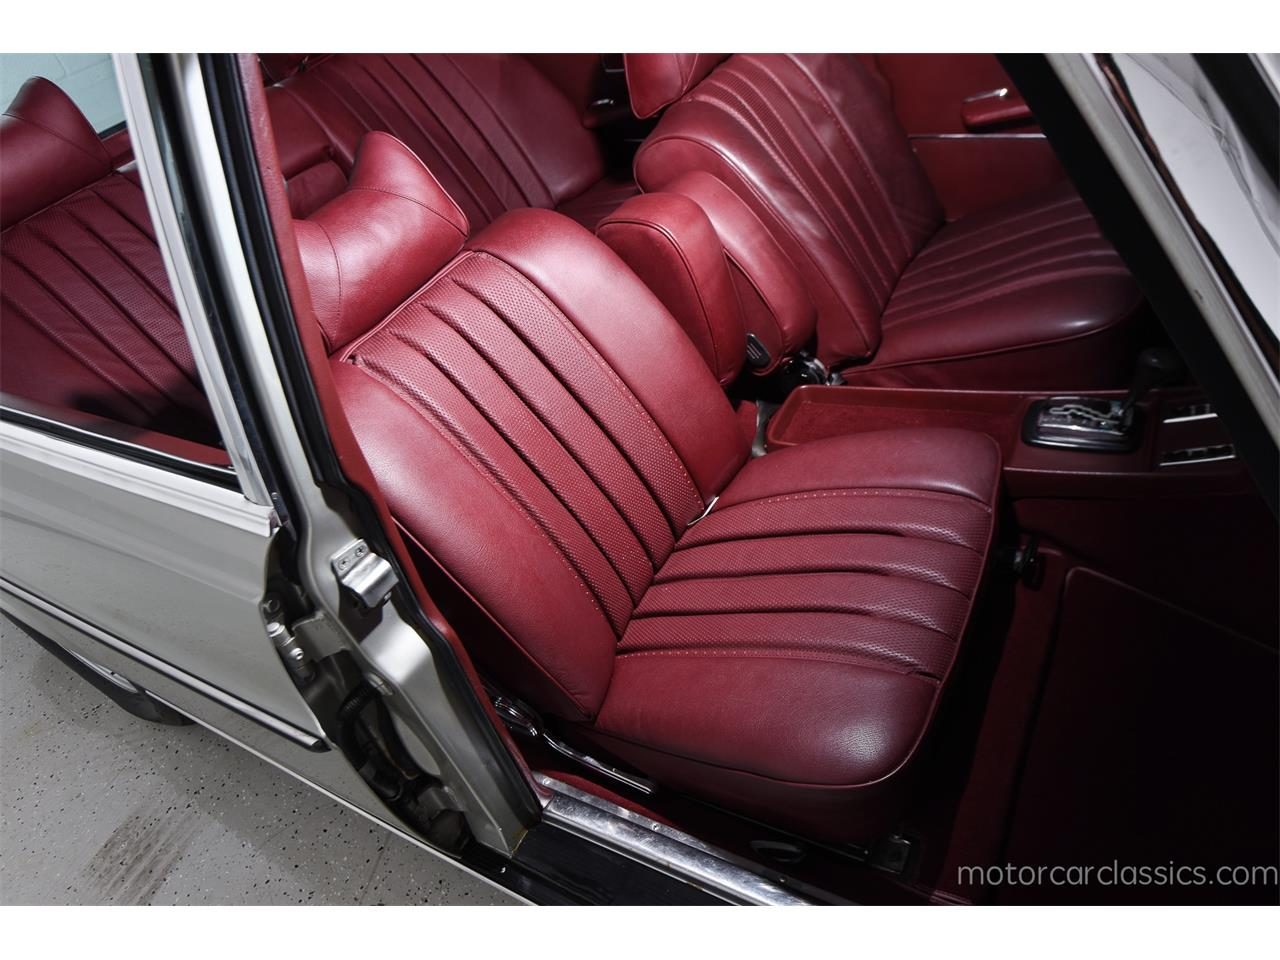 1971 Mercedes-Benz 300SEL for sale in Farmingdale, NY – photo 25